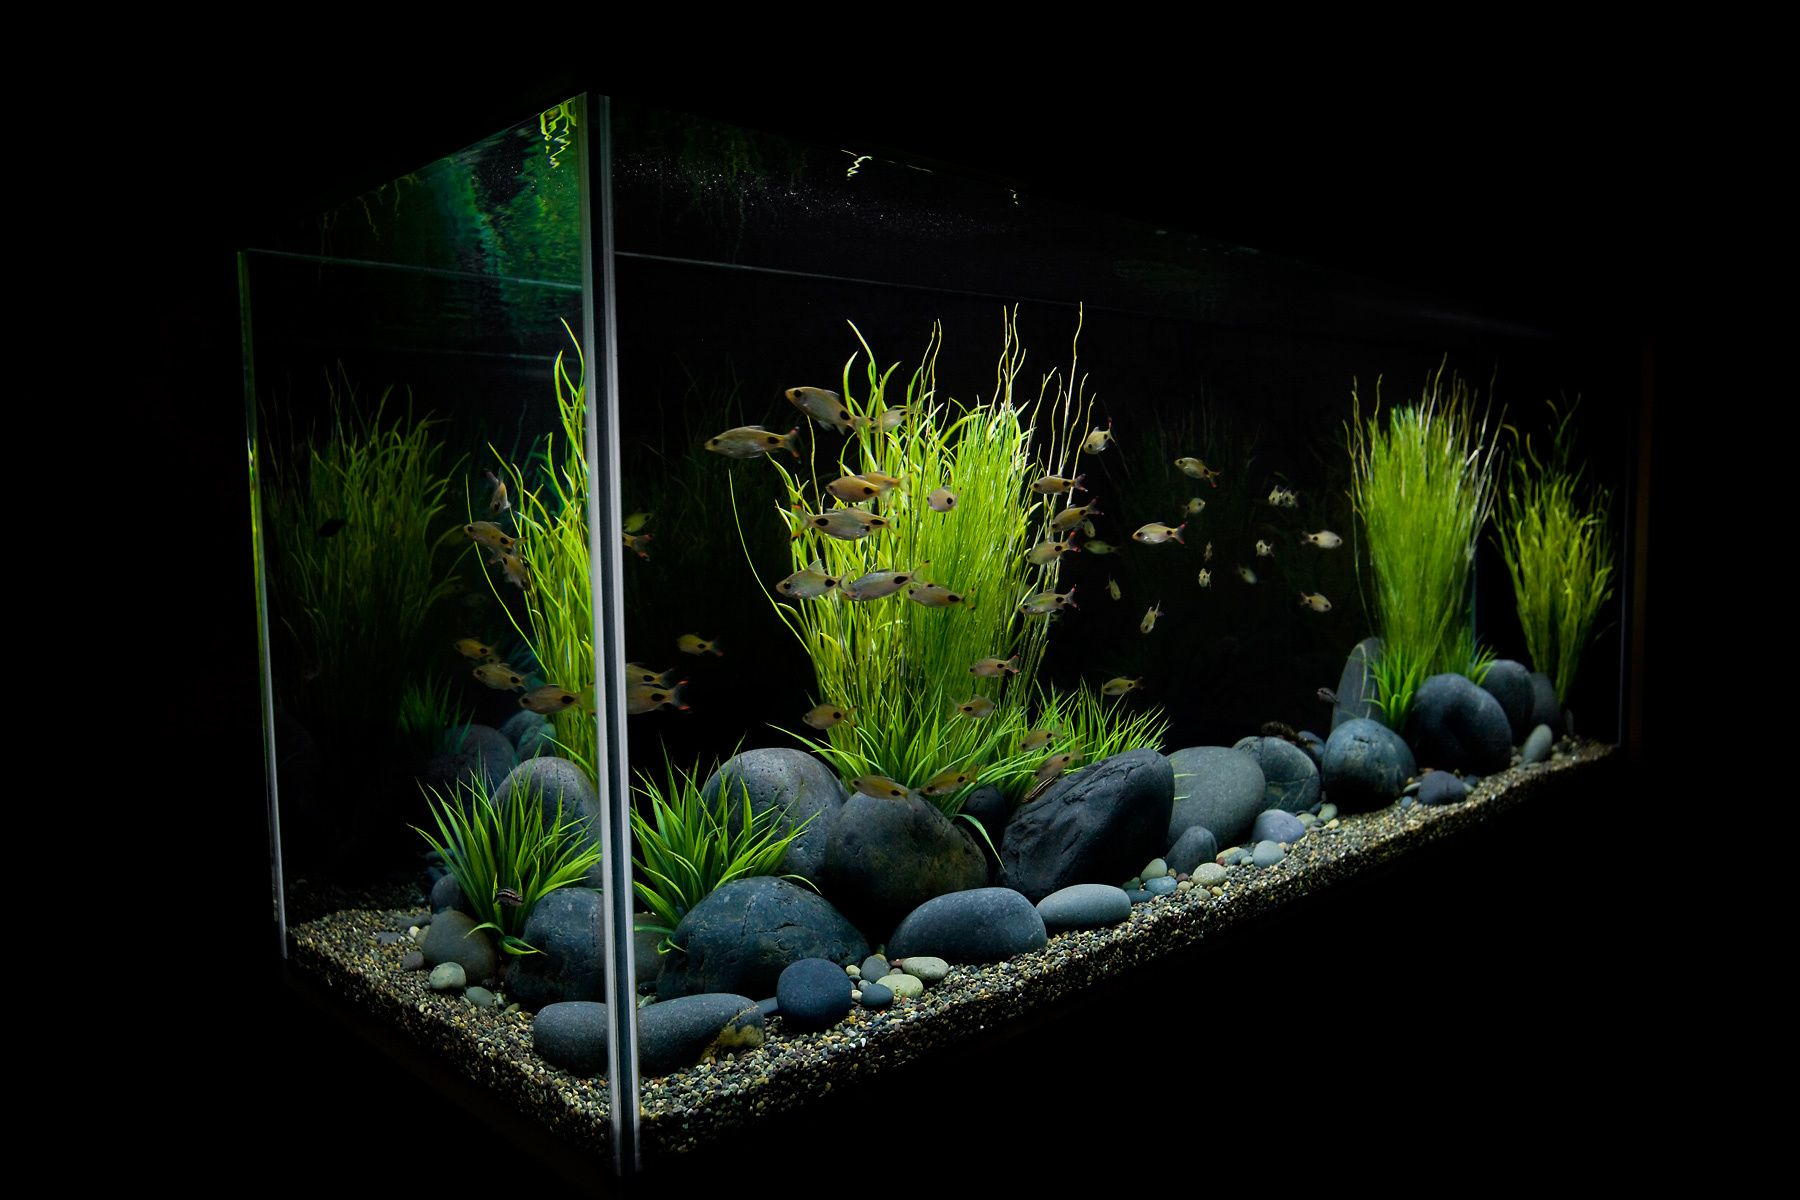 Freshwater Aquarium in a Modern Interior (aquarium detail)